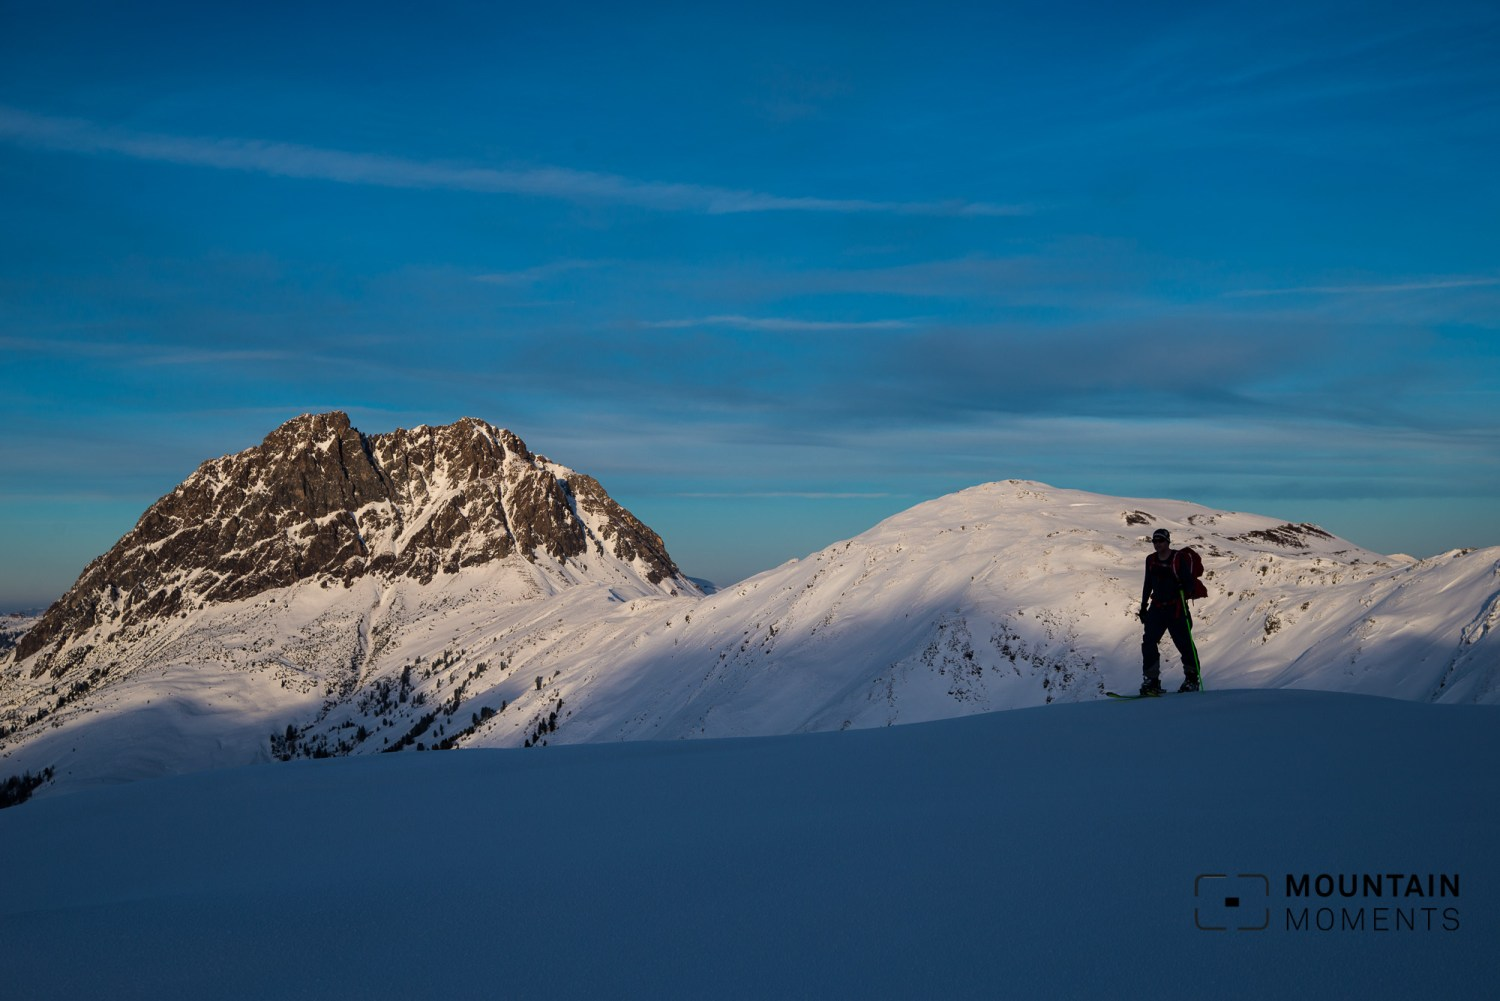 Mountain Photography Powerful Tips, mountain photography, mountain photography tips, bergfotografie tipps, bergfotografie, mountain photography tip contrast, contrast ion mountain photography, contrast in landscape photography, contrast photography